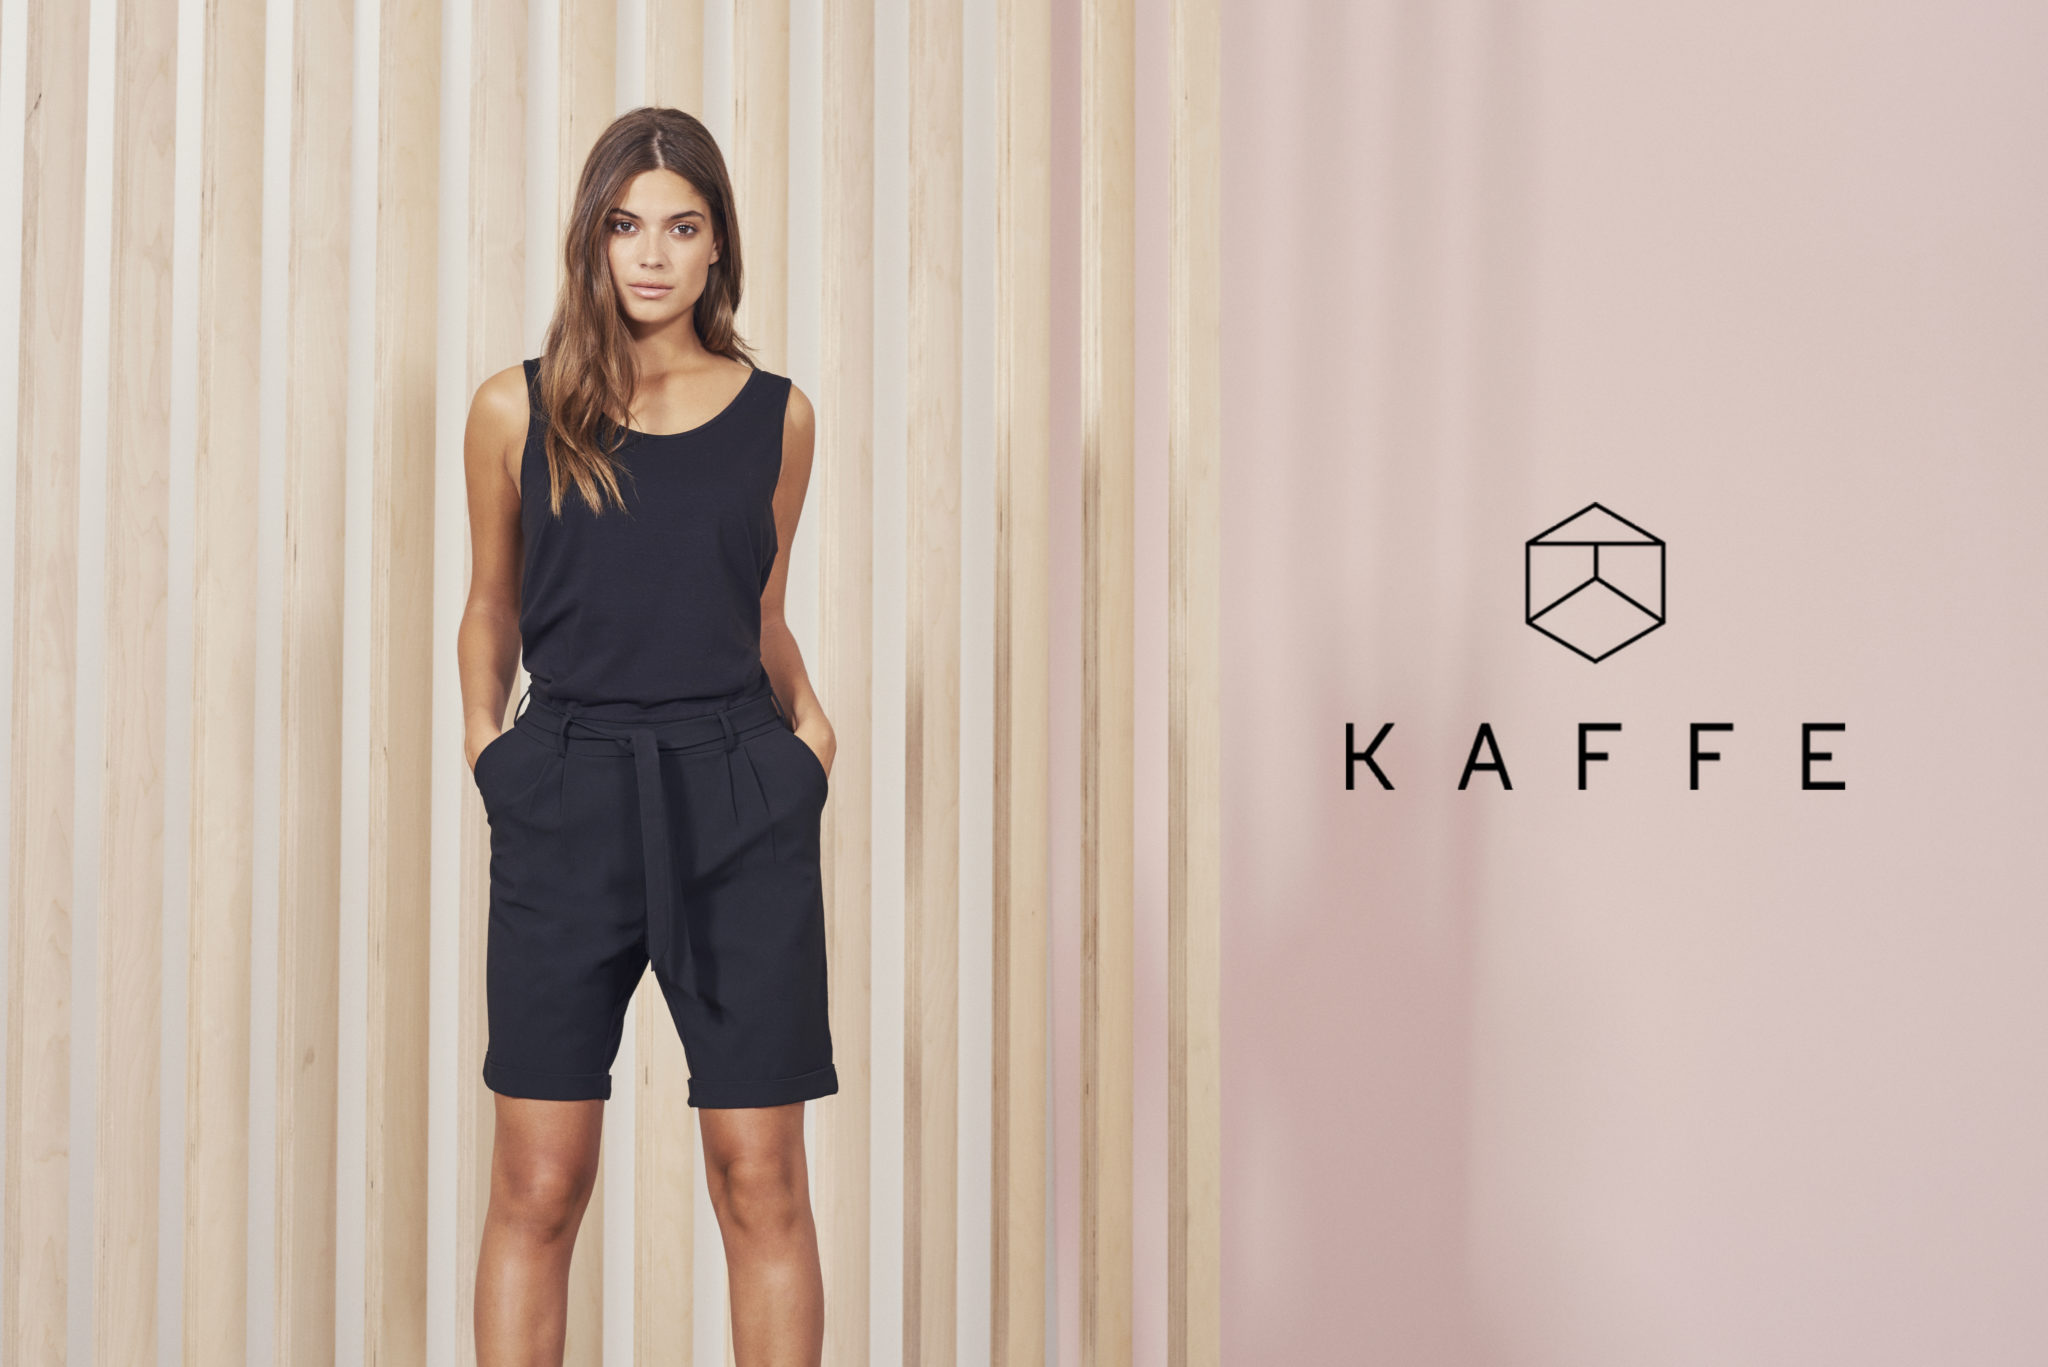 Kaffe-clothing